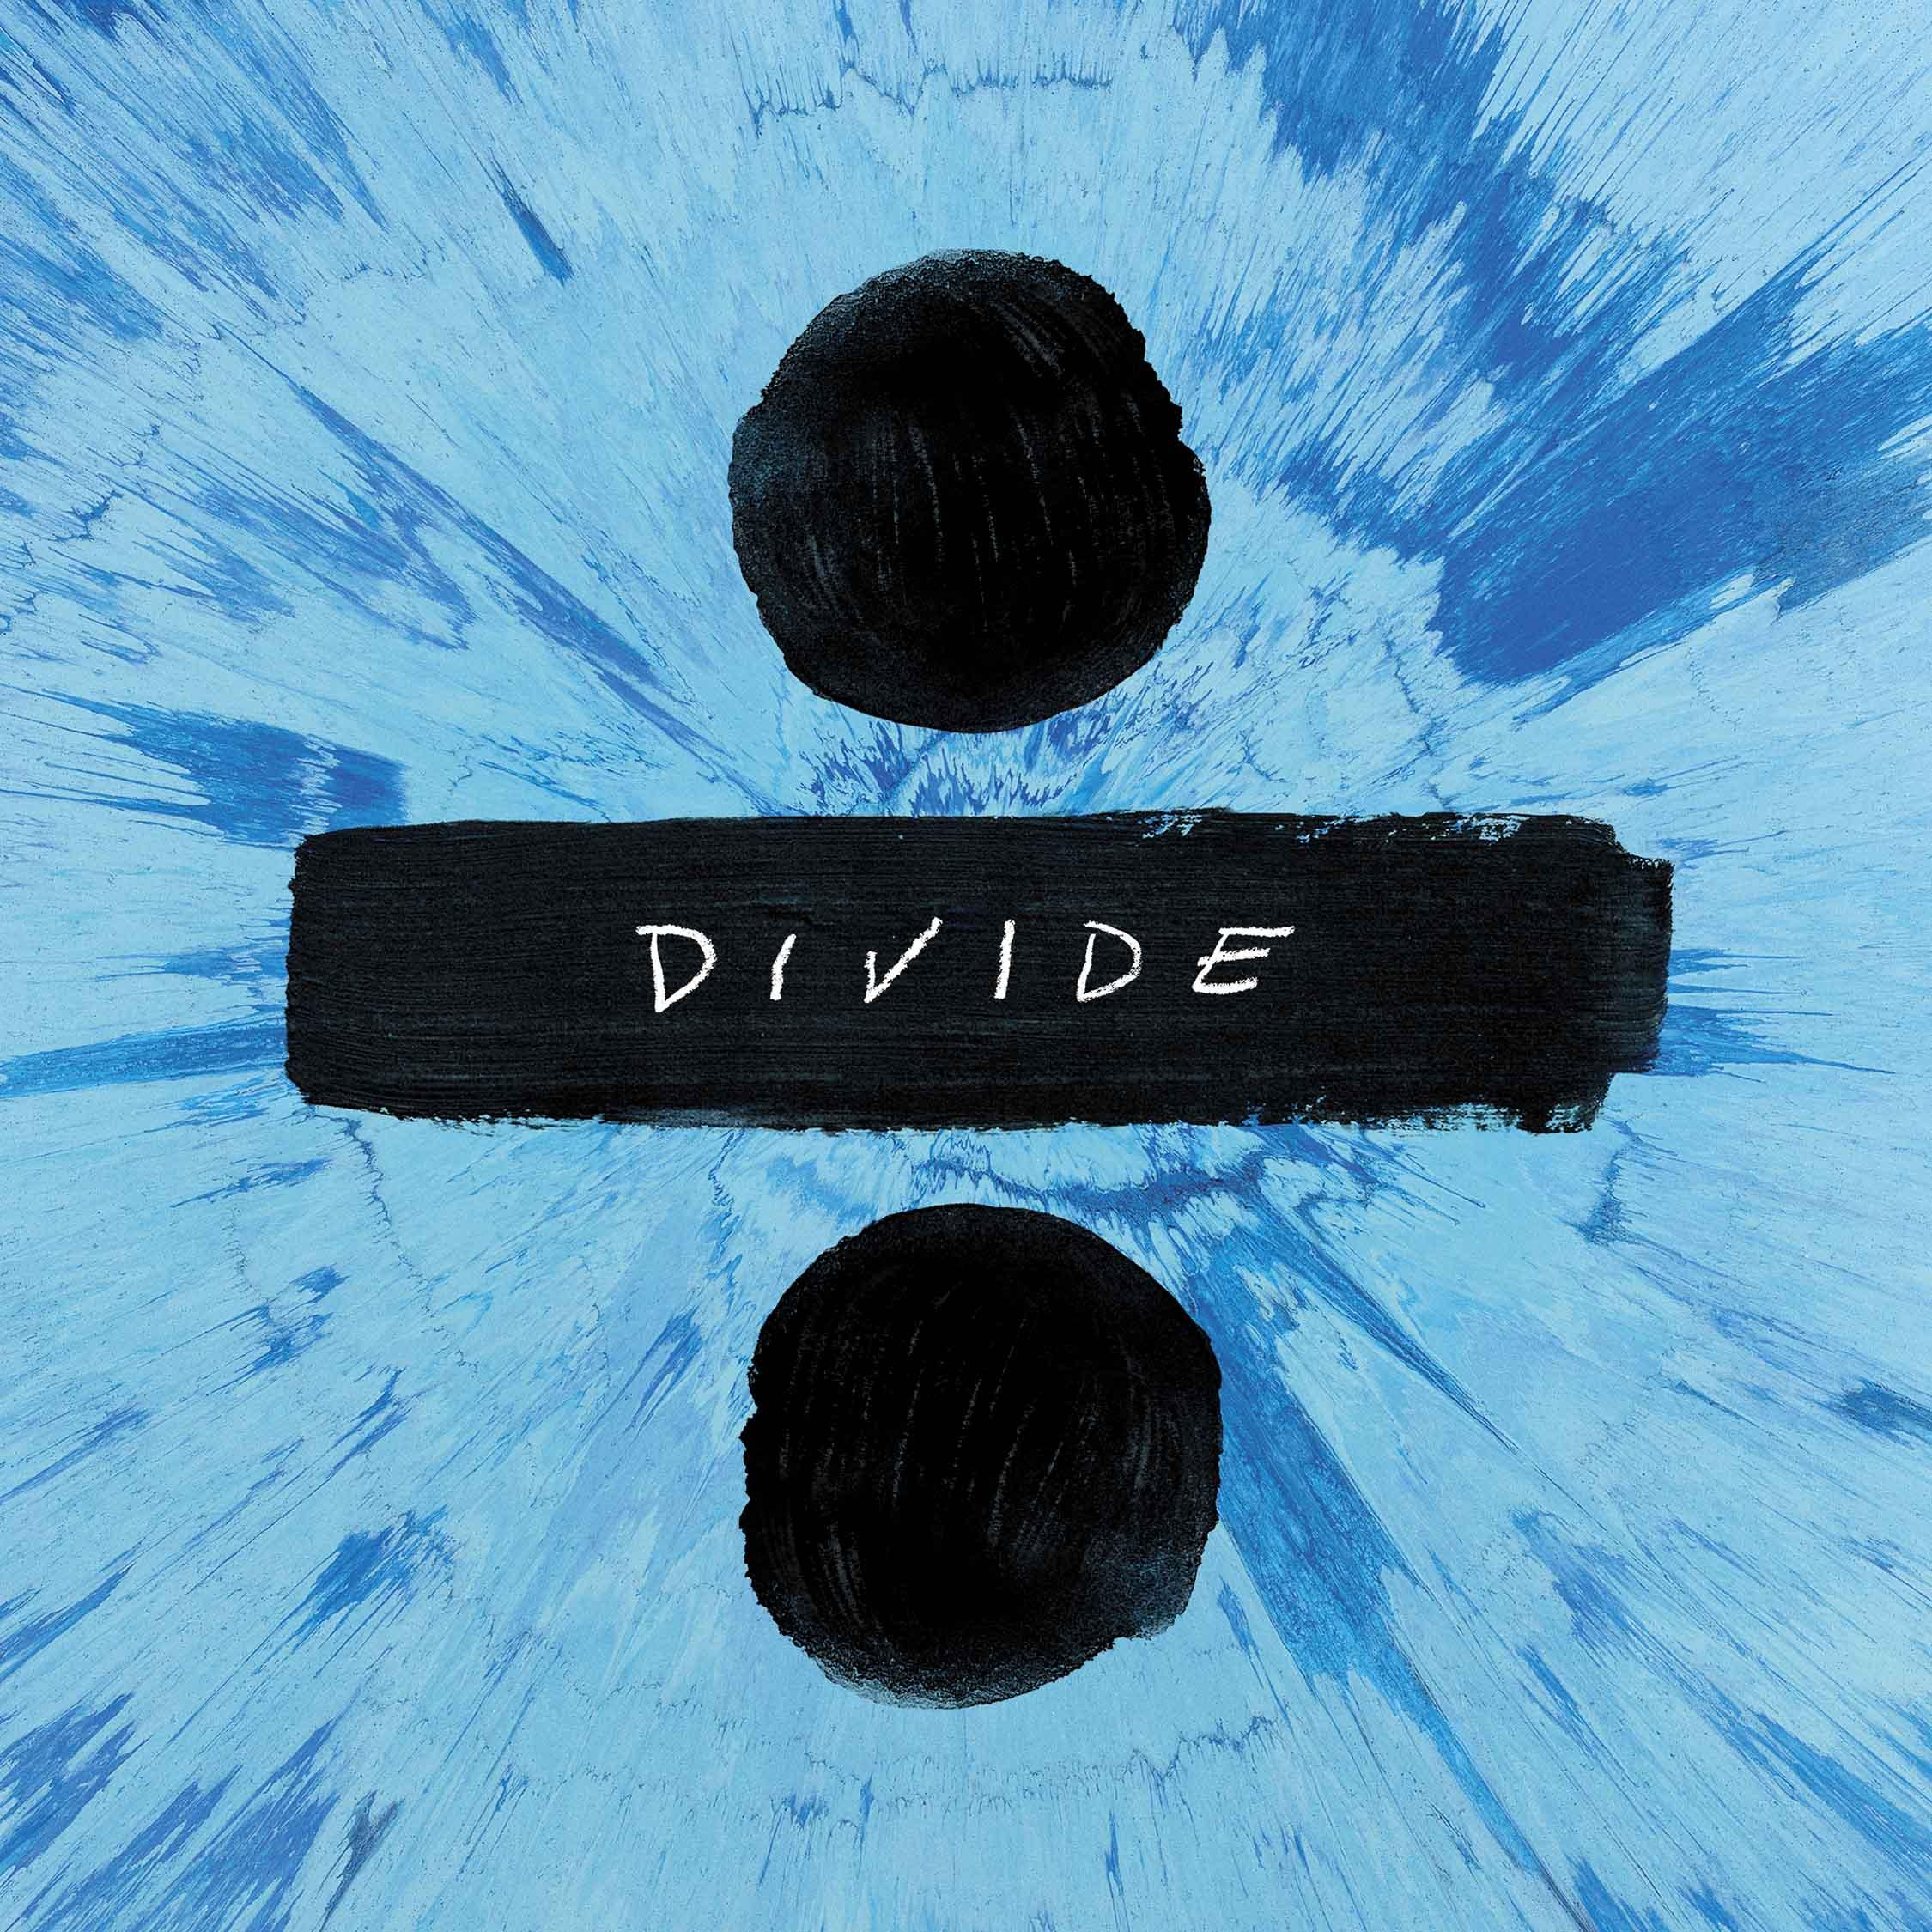 Album Spotlight: Ed Sheeran's Divide